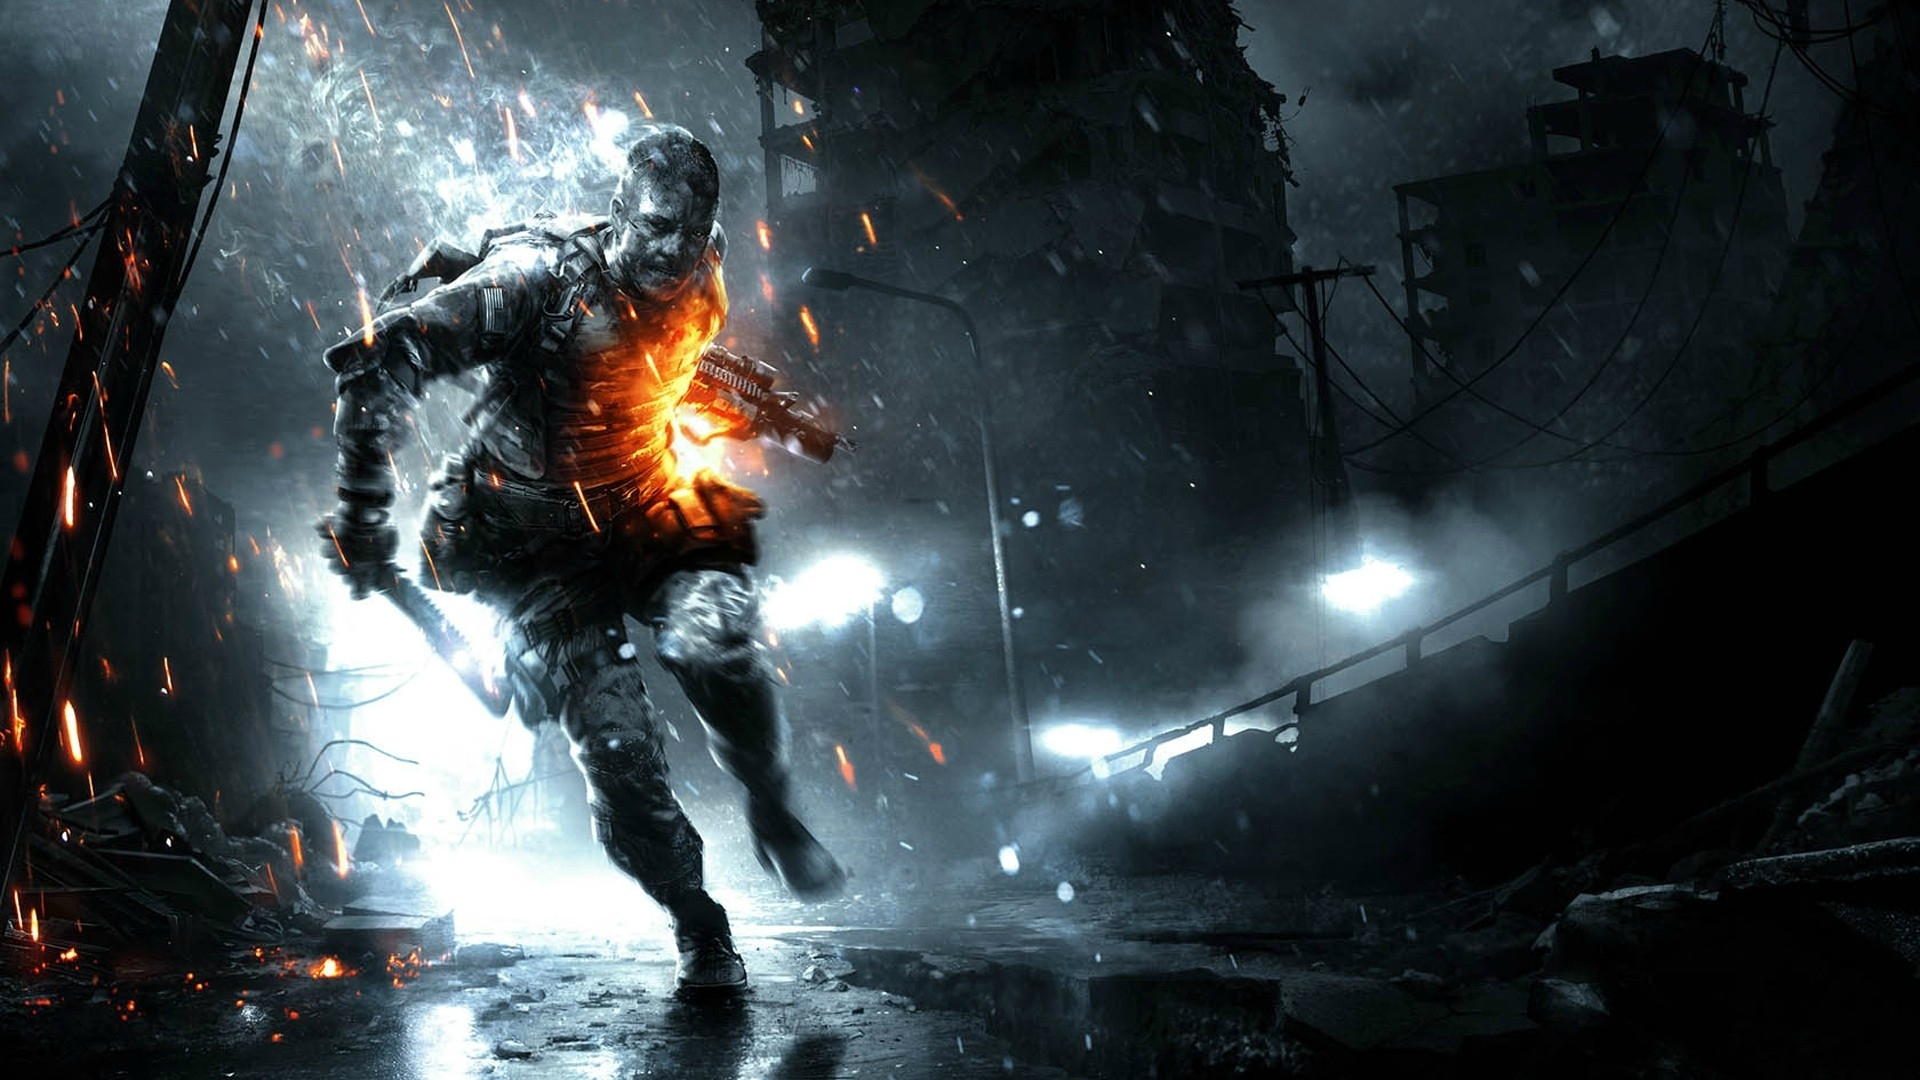 10 best gaming wallpaper hd 1080p full hd 1080p for pc